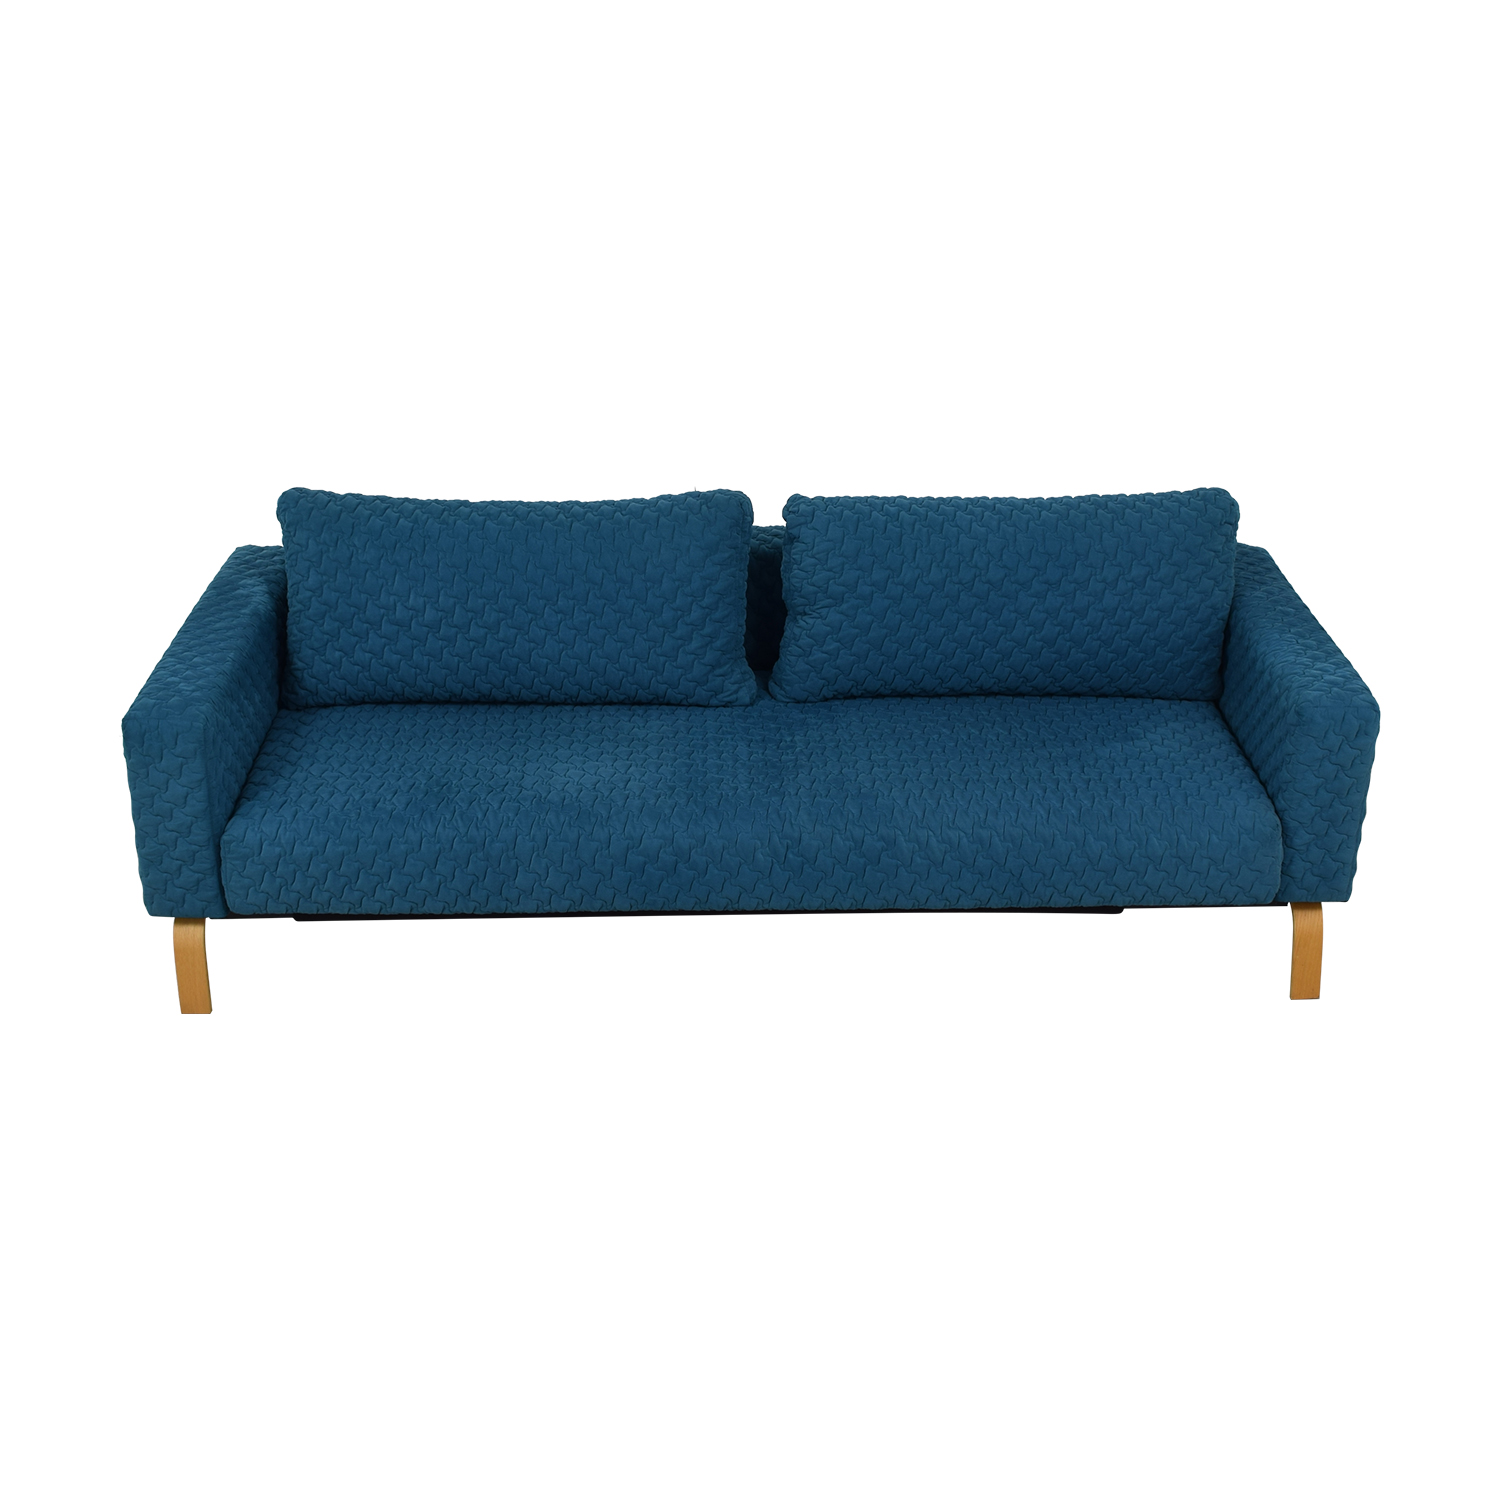 Innovation Living Inc Innovation Living Inc Blue Single Cushion Sleep Sofa second hand